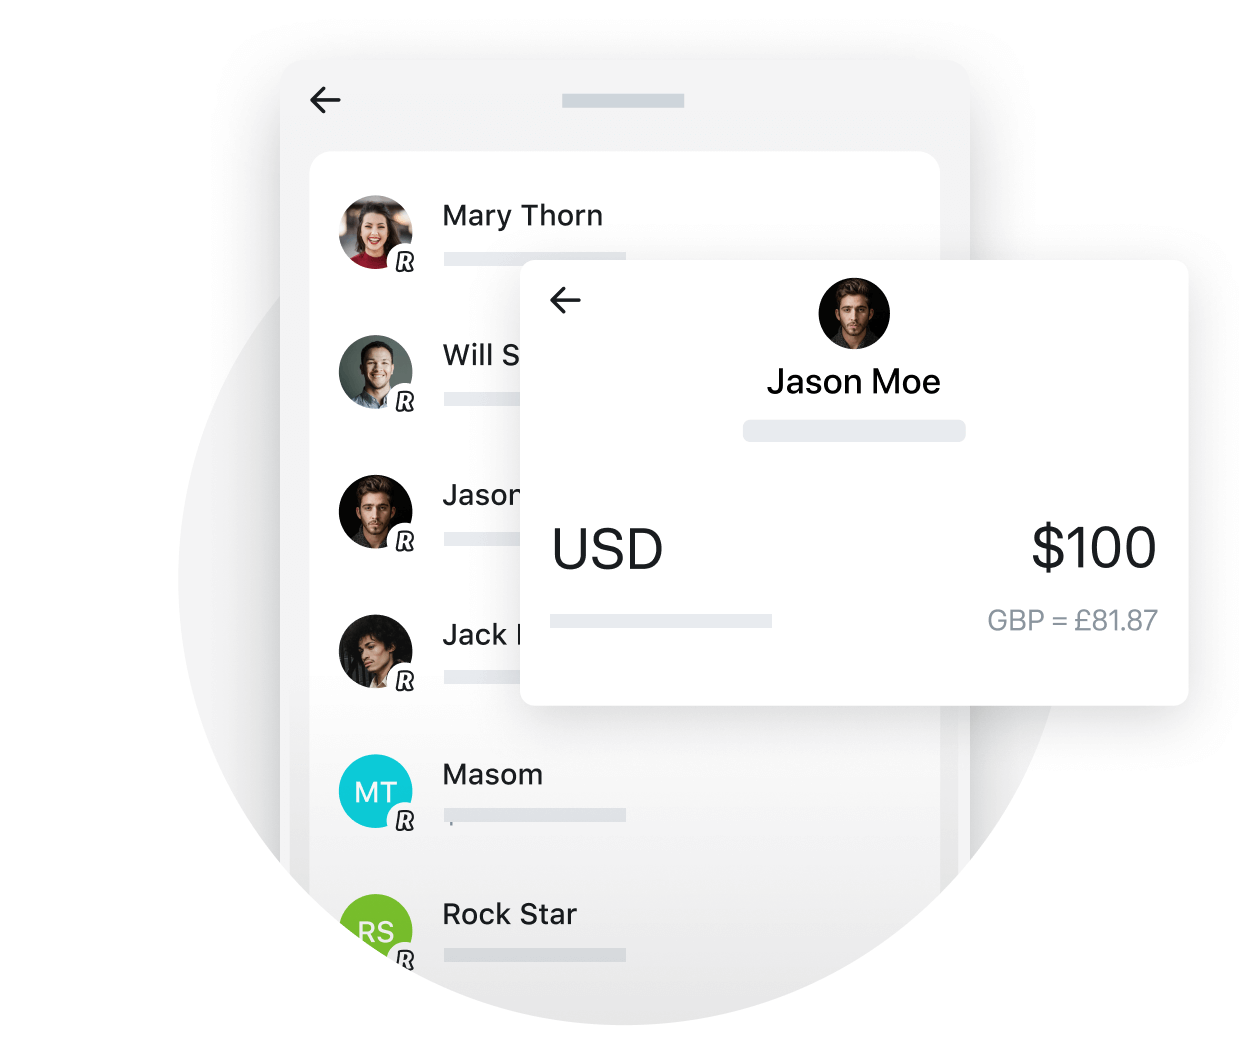 Instant transfers to Revolut users in 30+ currencies